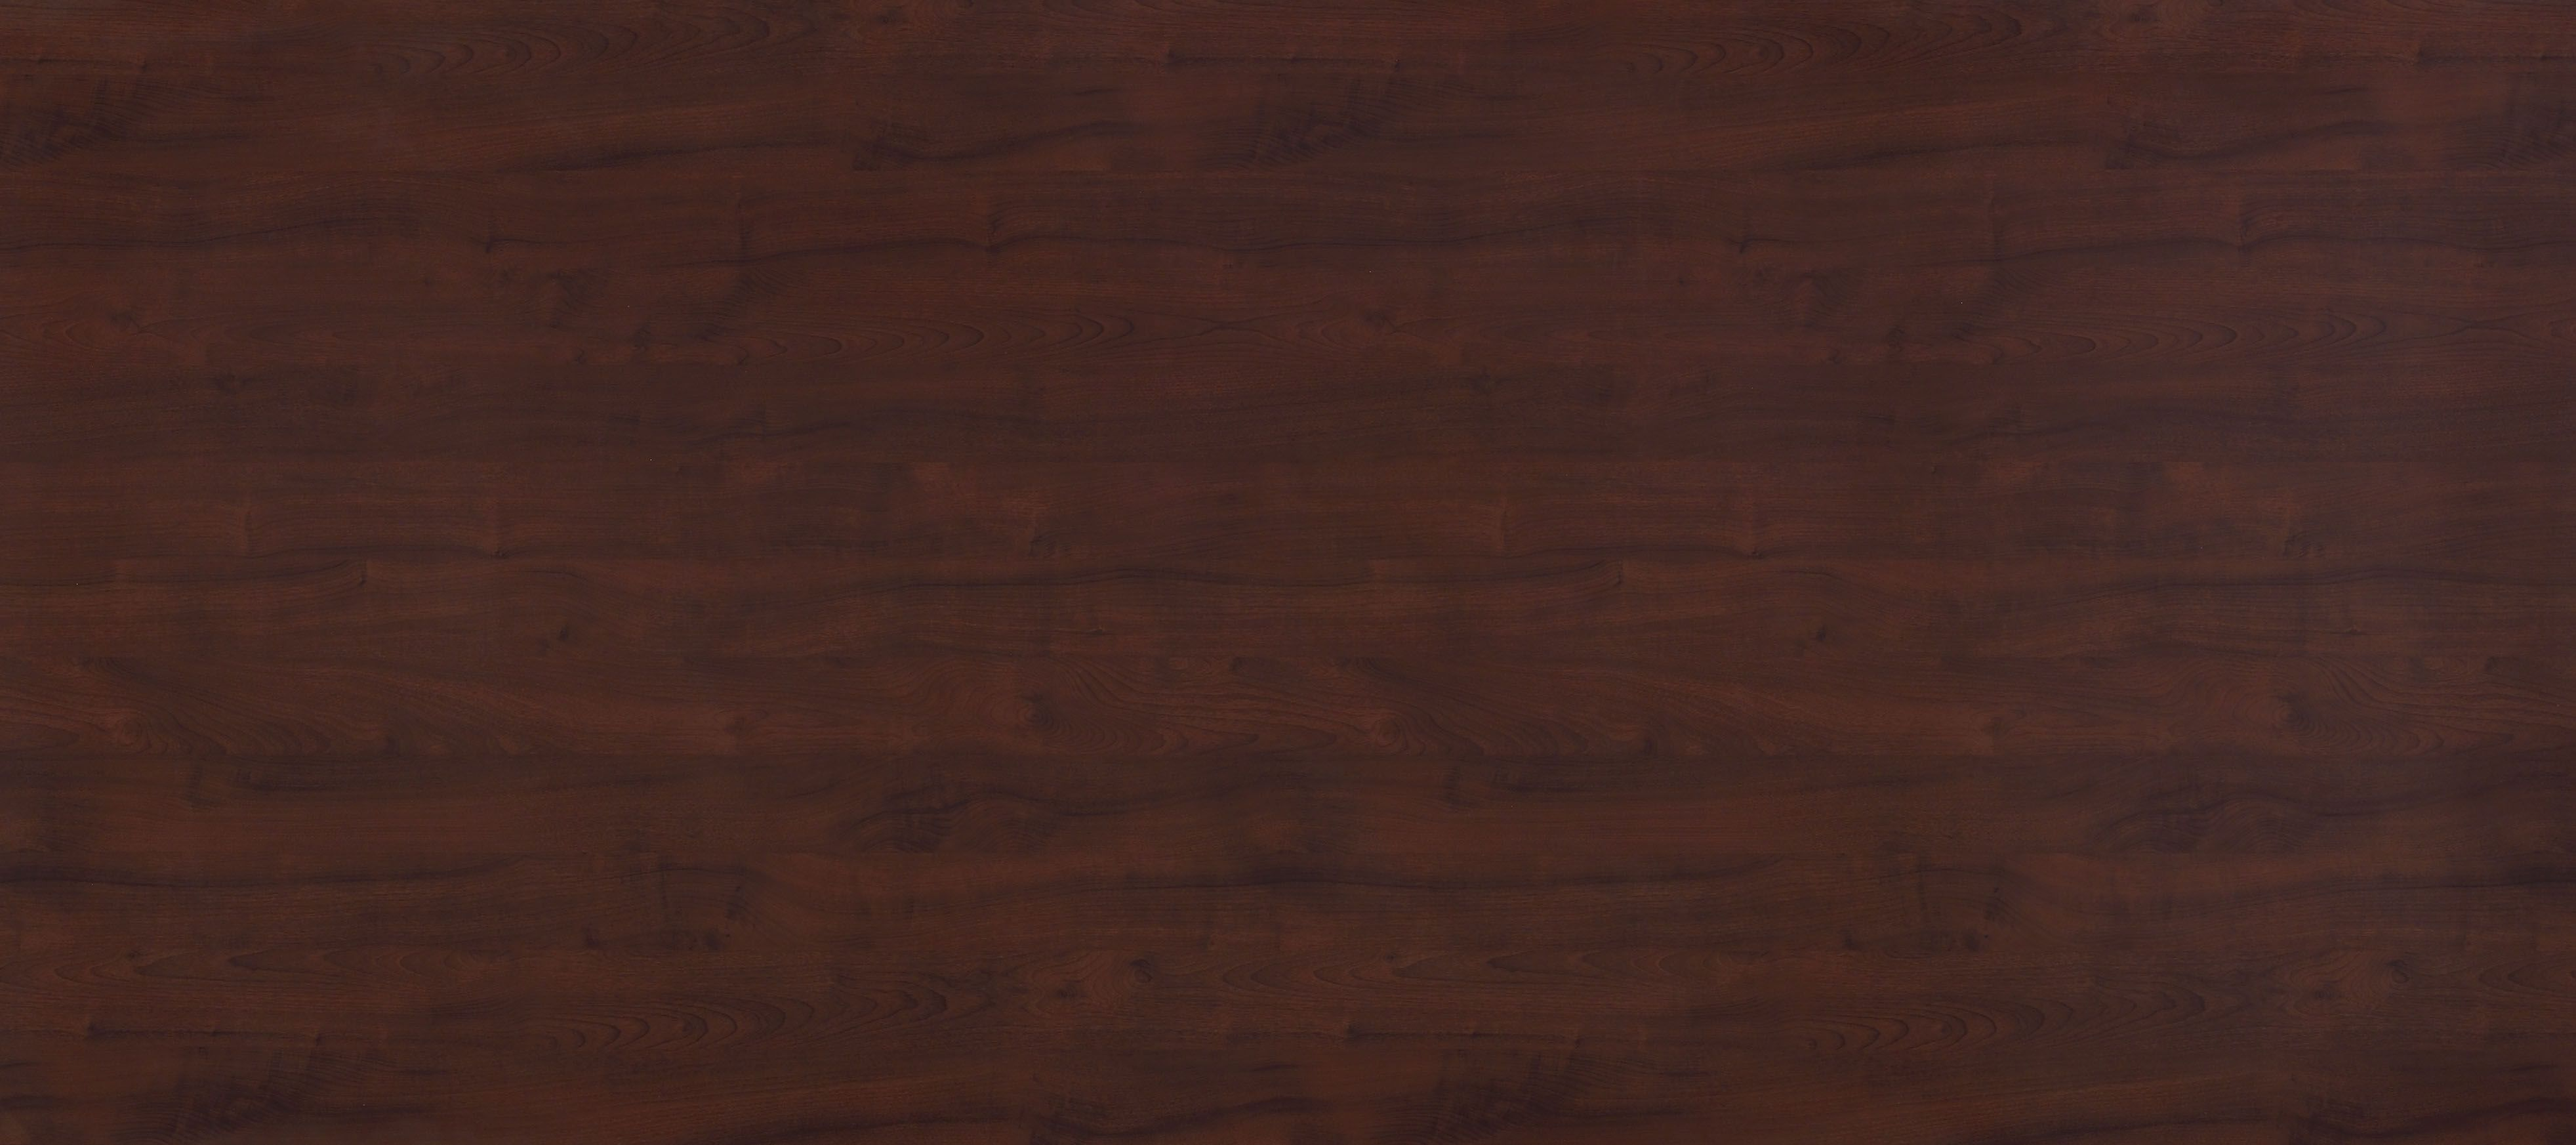 Free texture light wood wood new lugher texture - Wood Texture Google Search